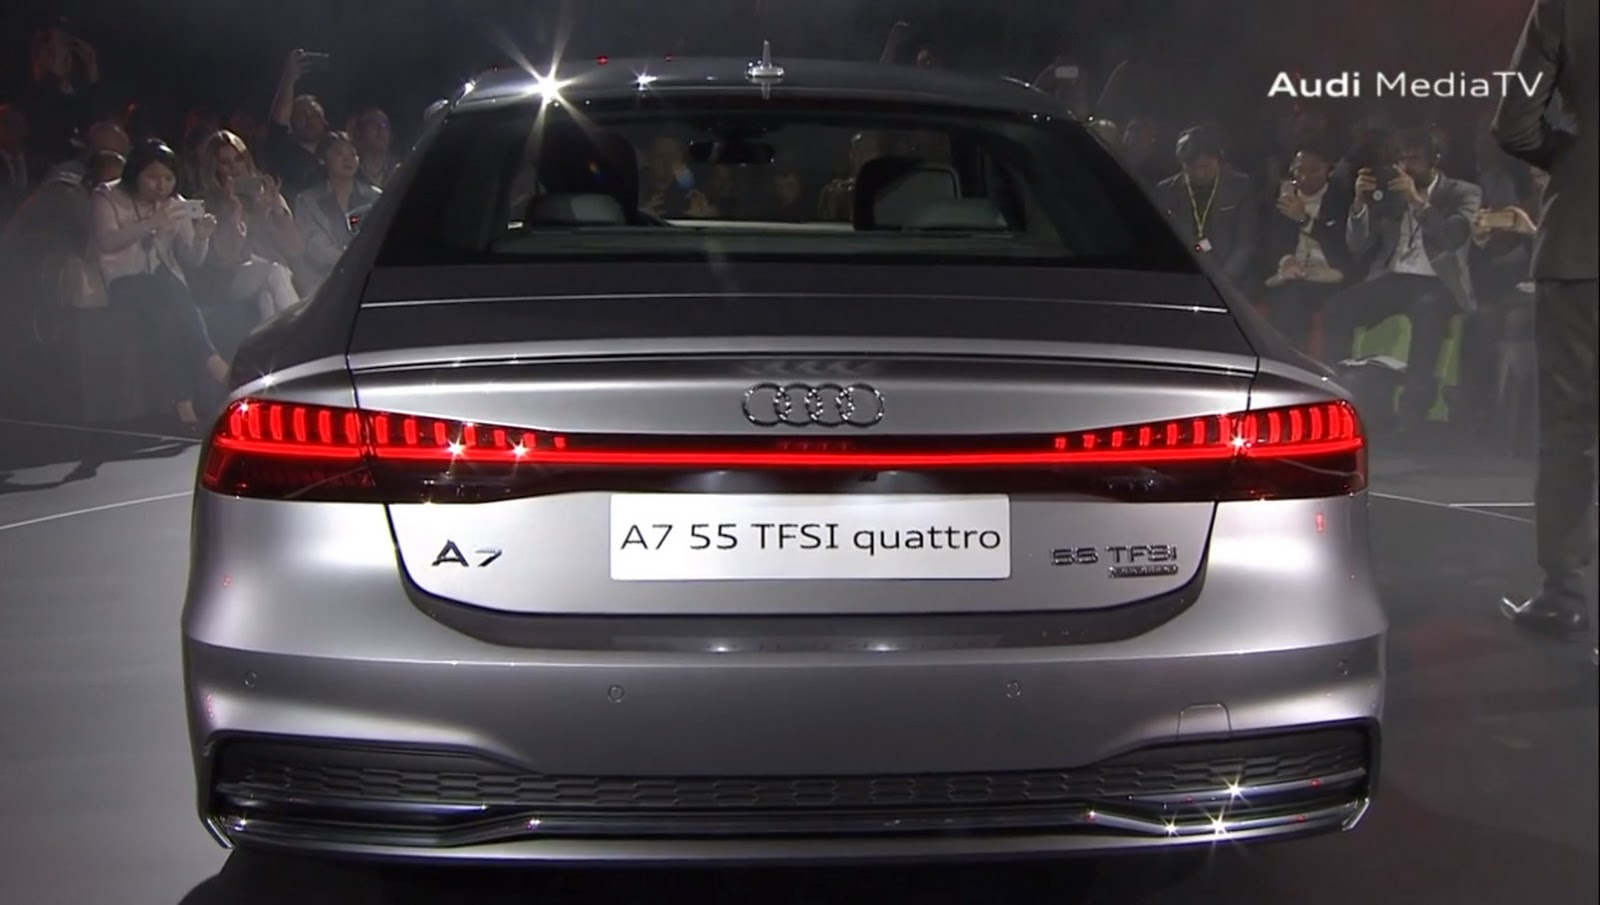 New Audi A7 First Photos Watch The Reveal Live Here At 1